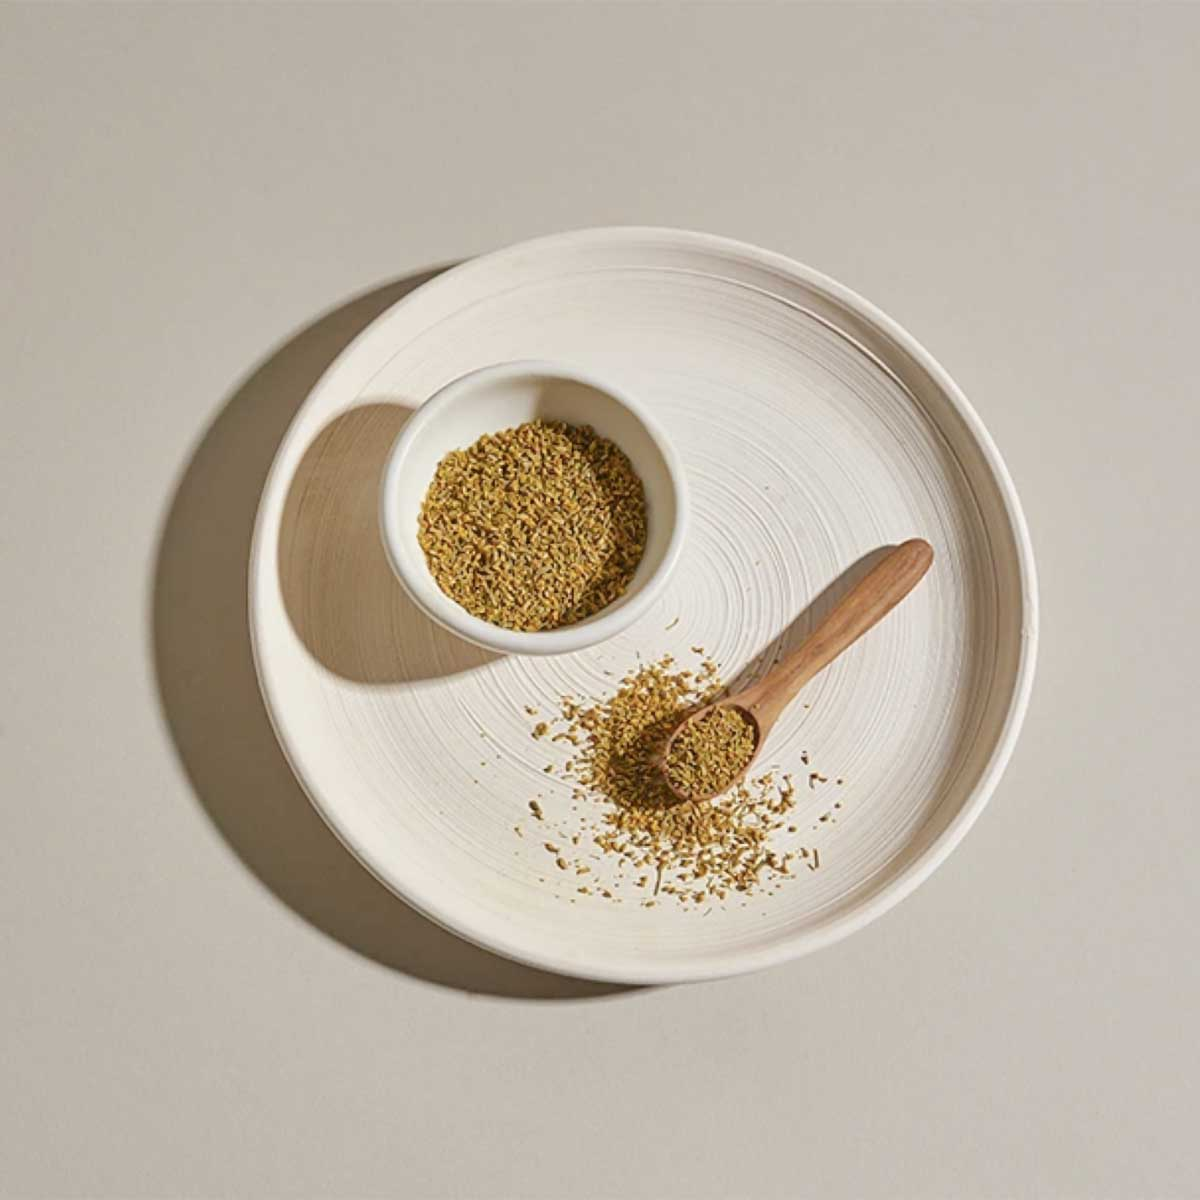 Fennel Pollen in Dish